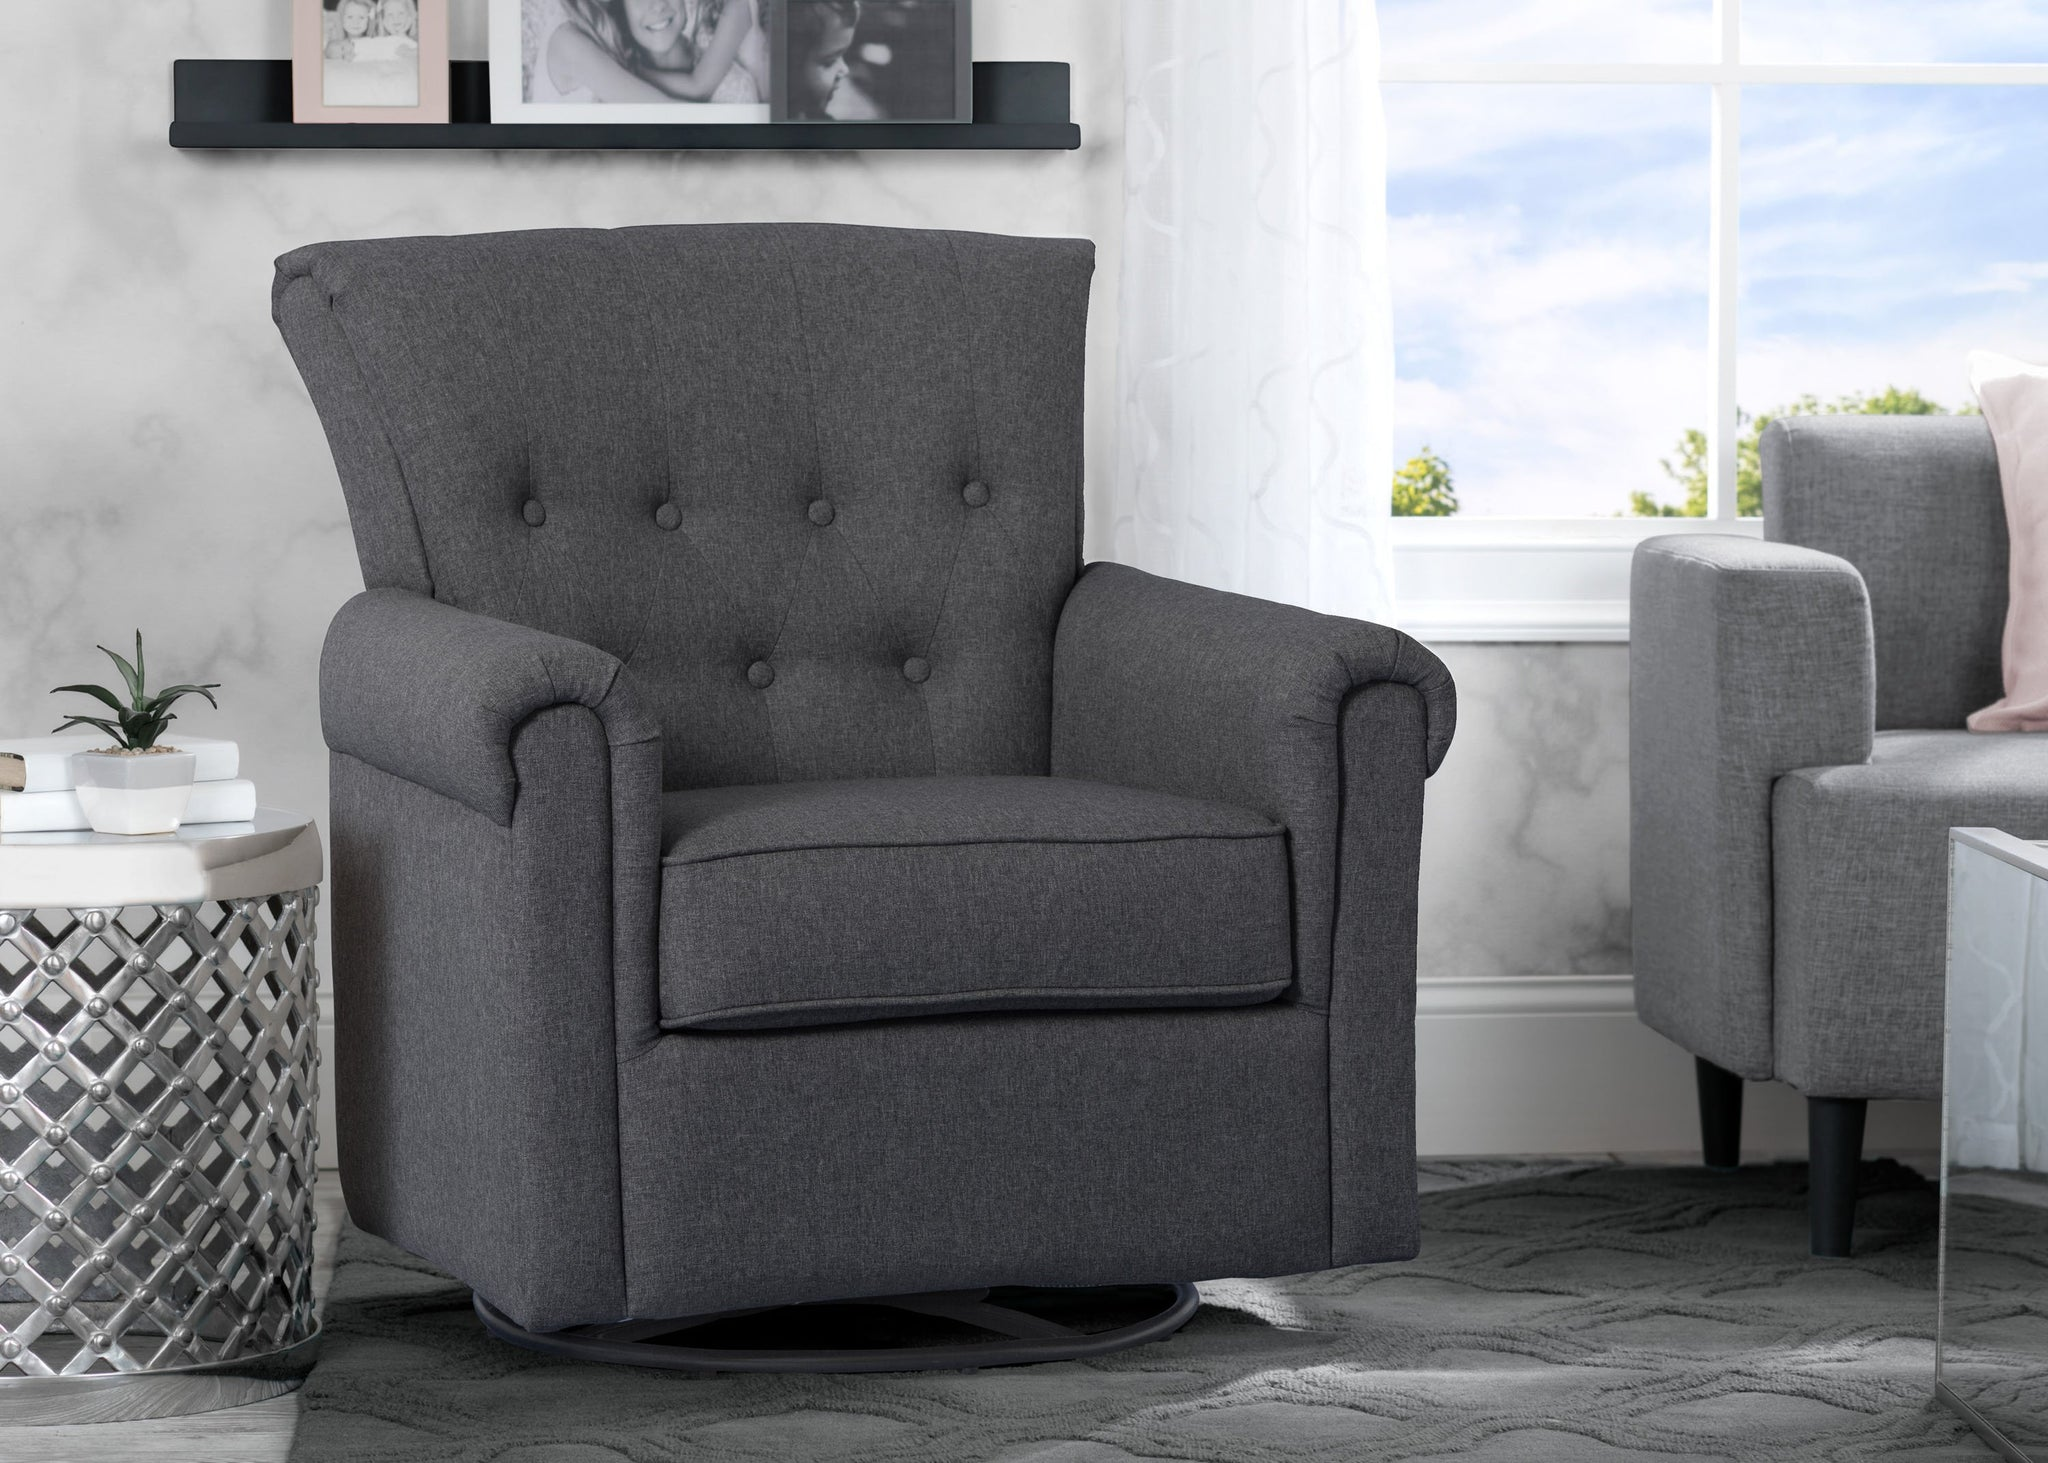 Delta Children Charcoal Grey (931) Harper Nursery Glider Swivel Rocker Chair (525310), Adult Room, c2c